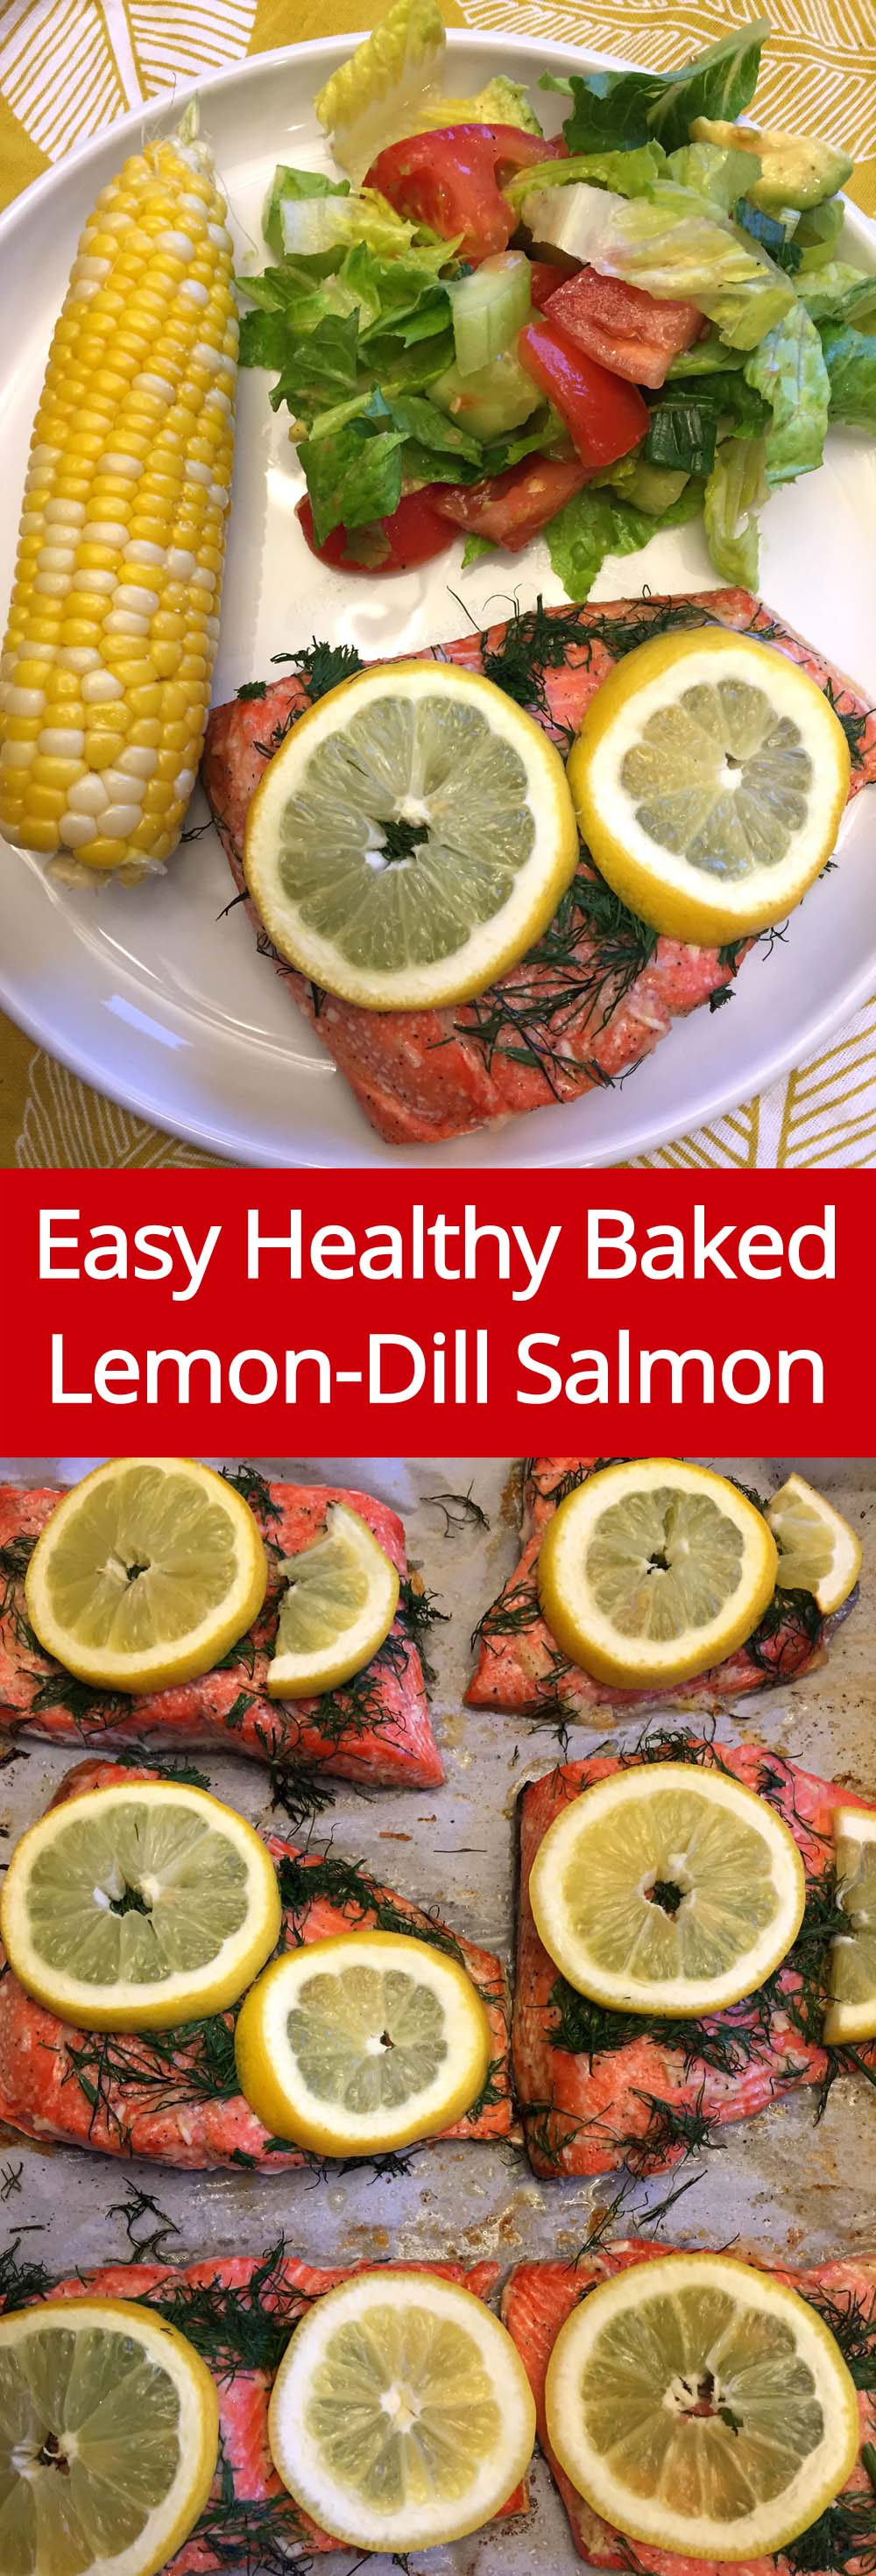 Easy & Healthy Baked Lemon-Dill Salmon - So Delicious!